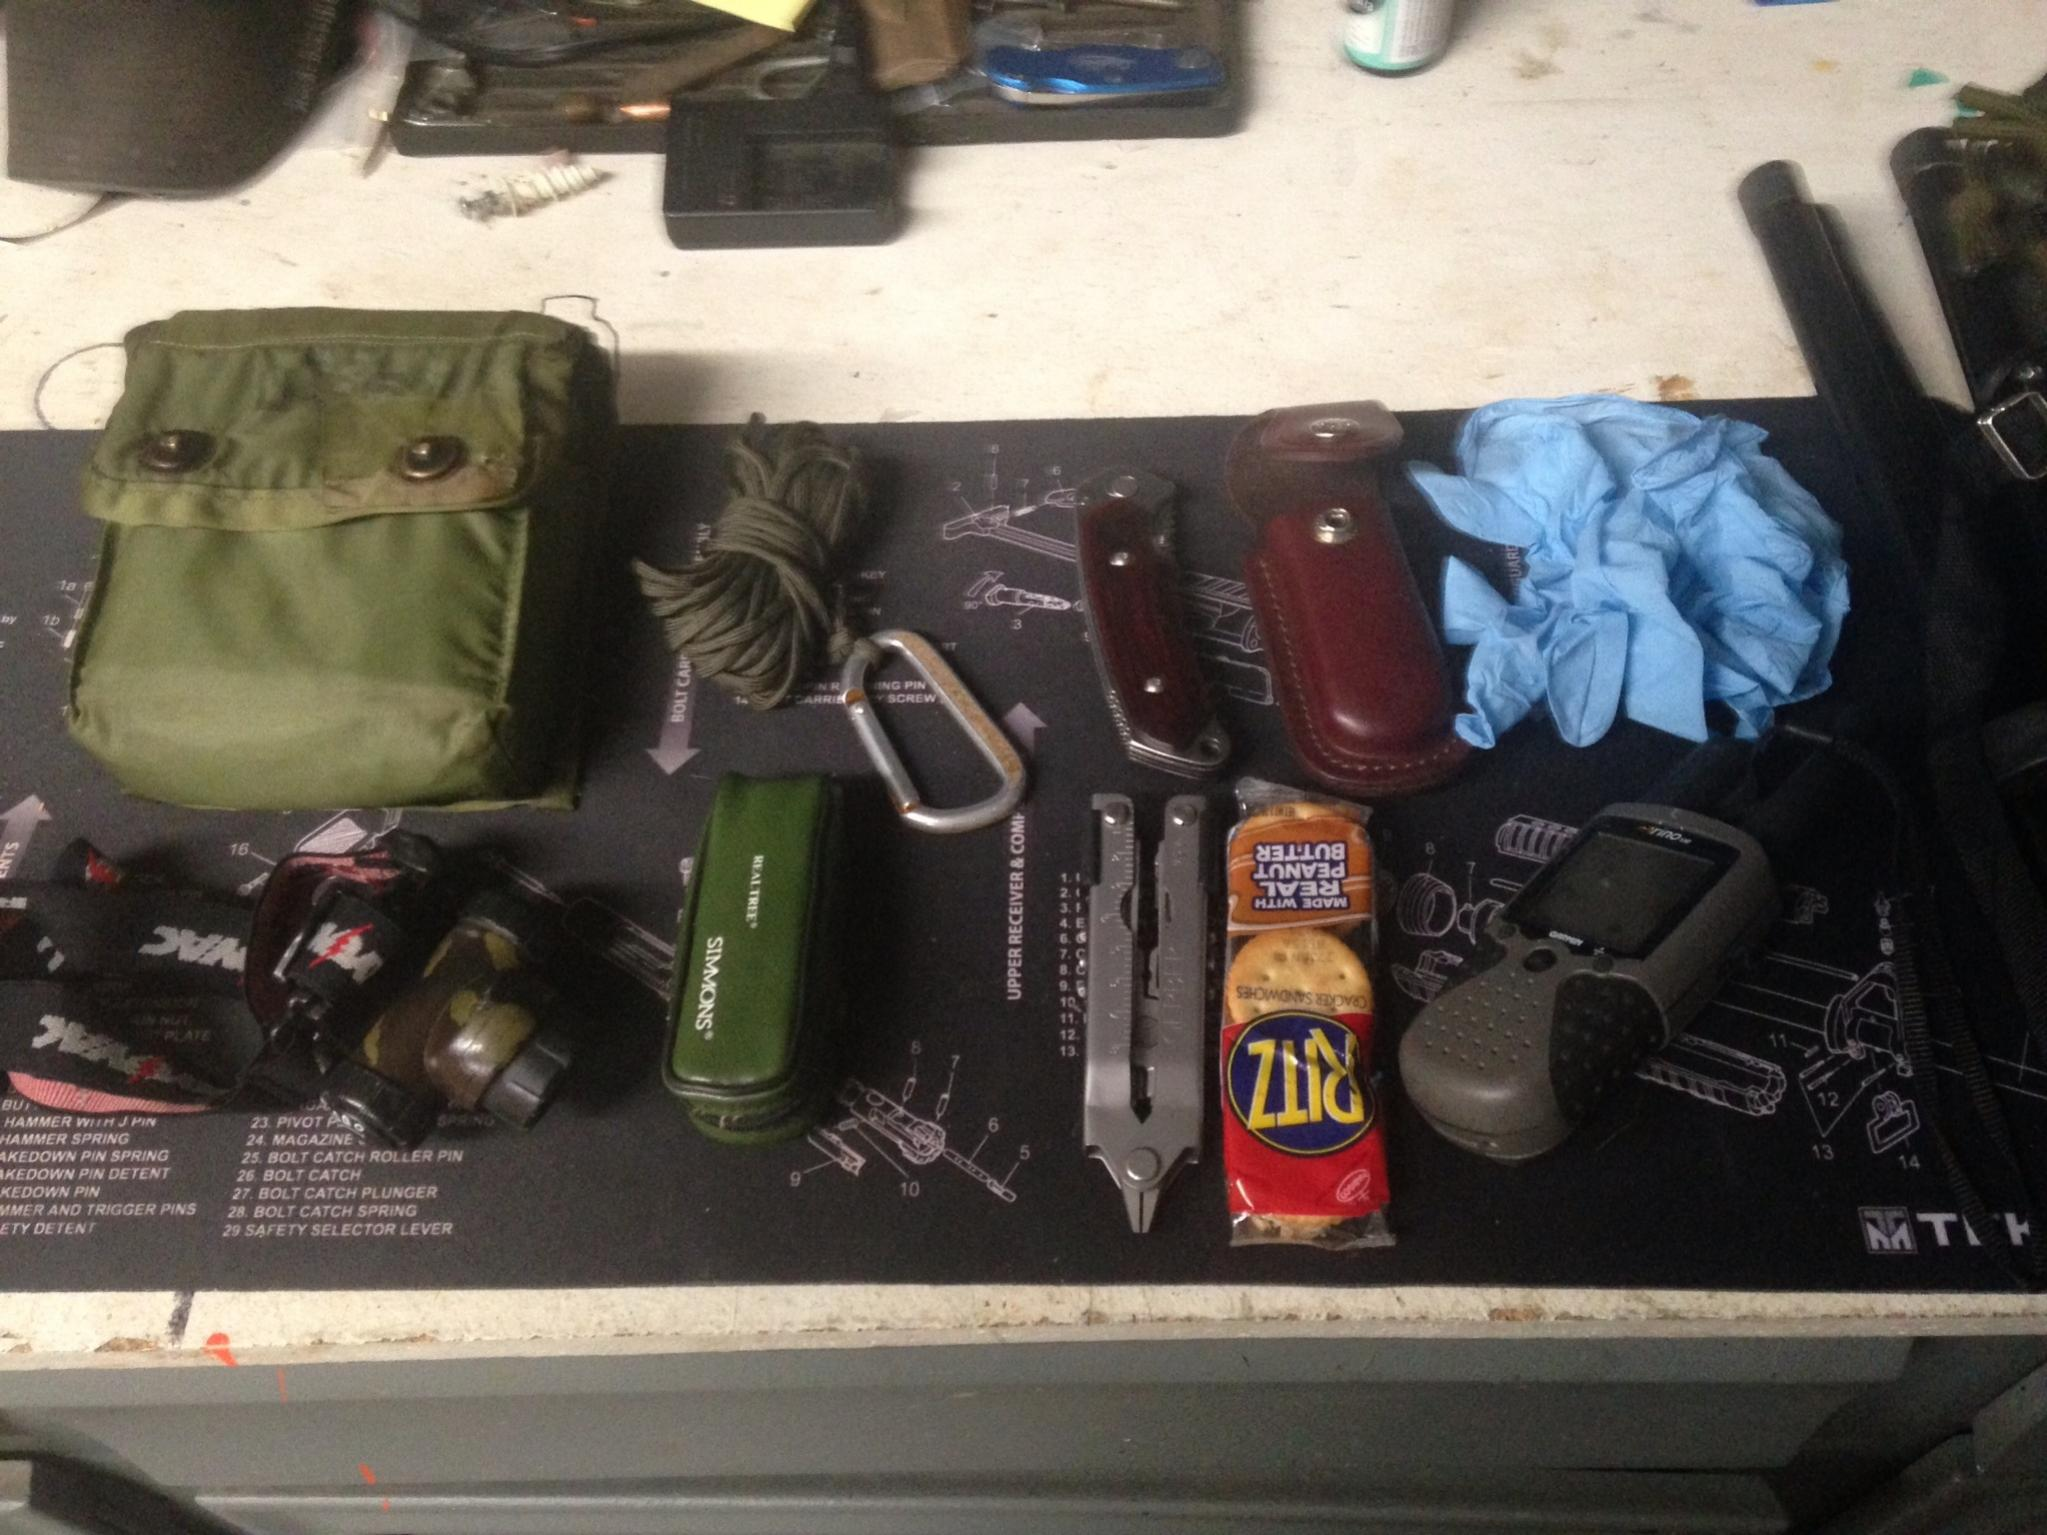 Show your hunting packs/gear.-image.jpg